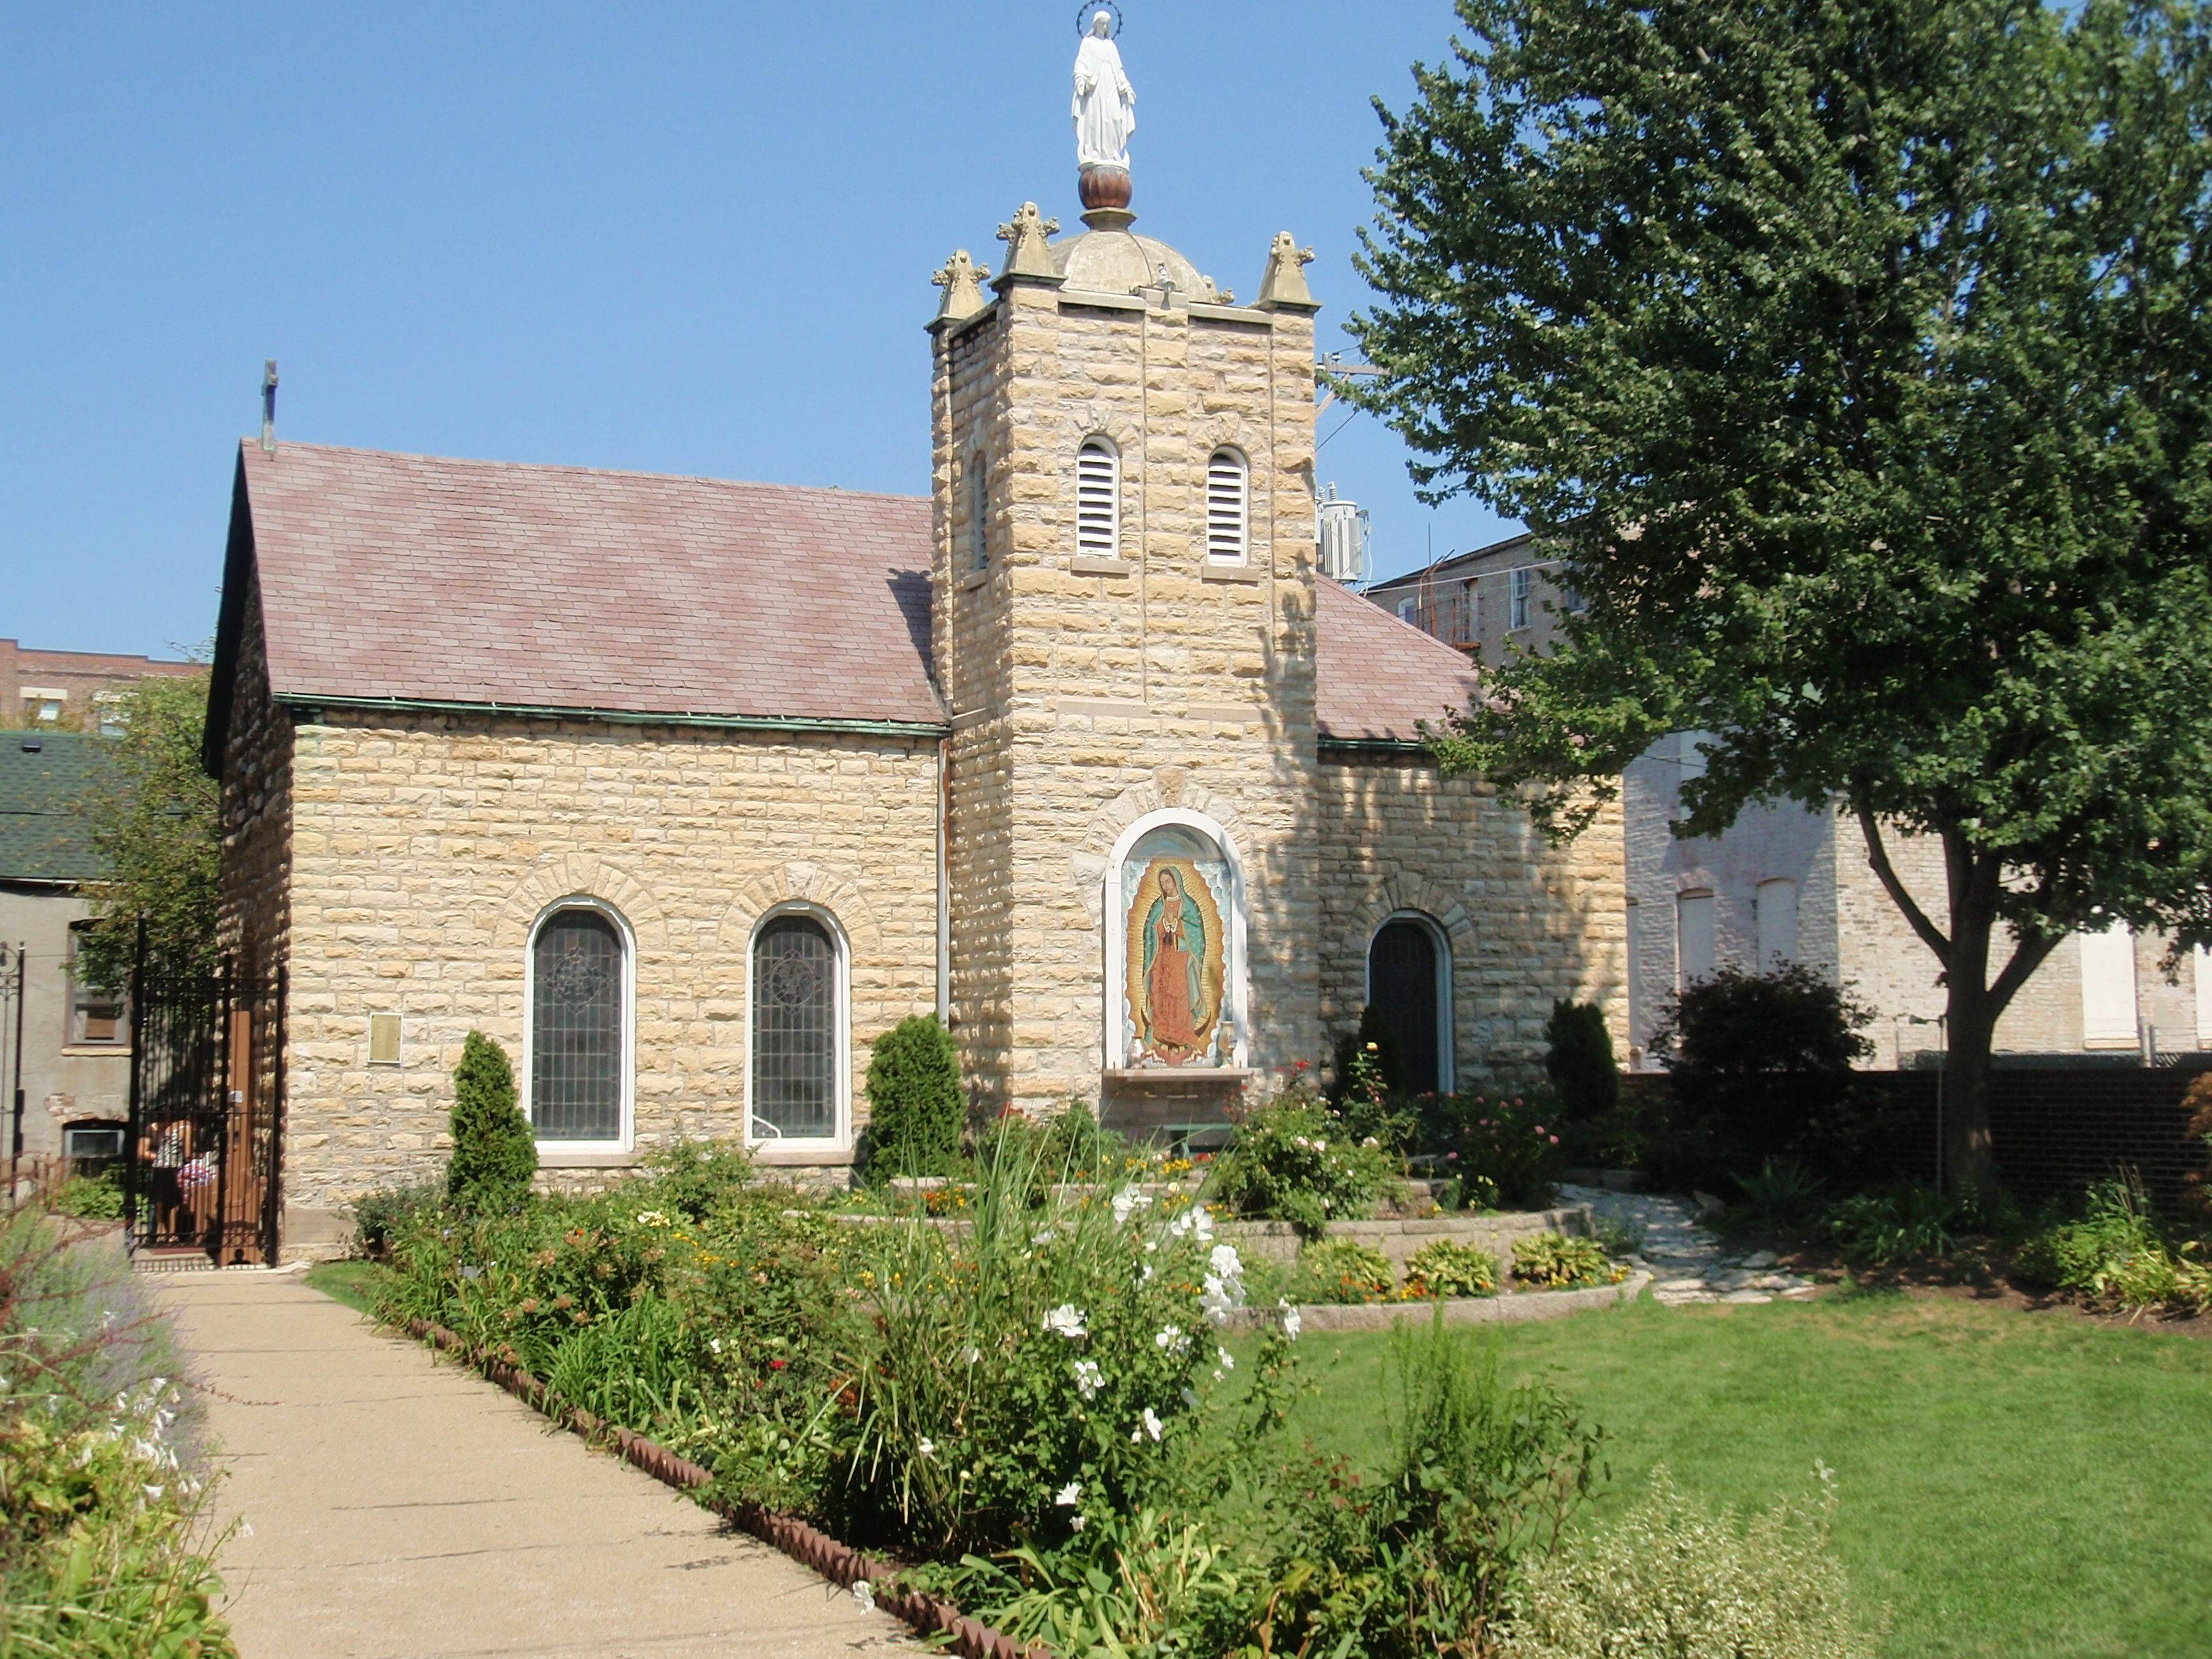 The Chapel adjacent to St. Procopius Catholic Church at 1641 S Allport St, Chicago will be one stop during the Chicago Ethnic Neighborhood tour.